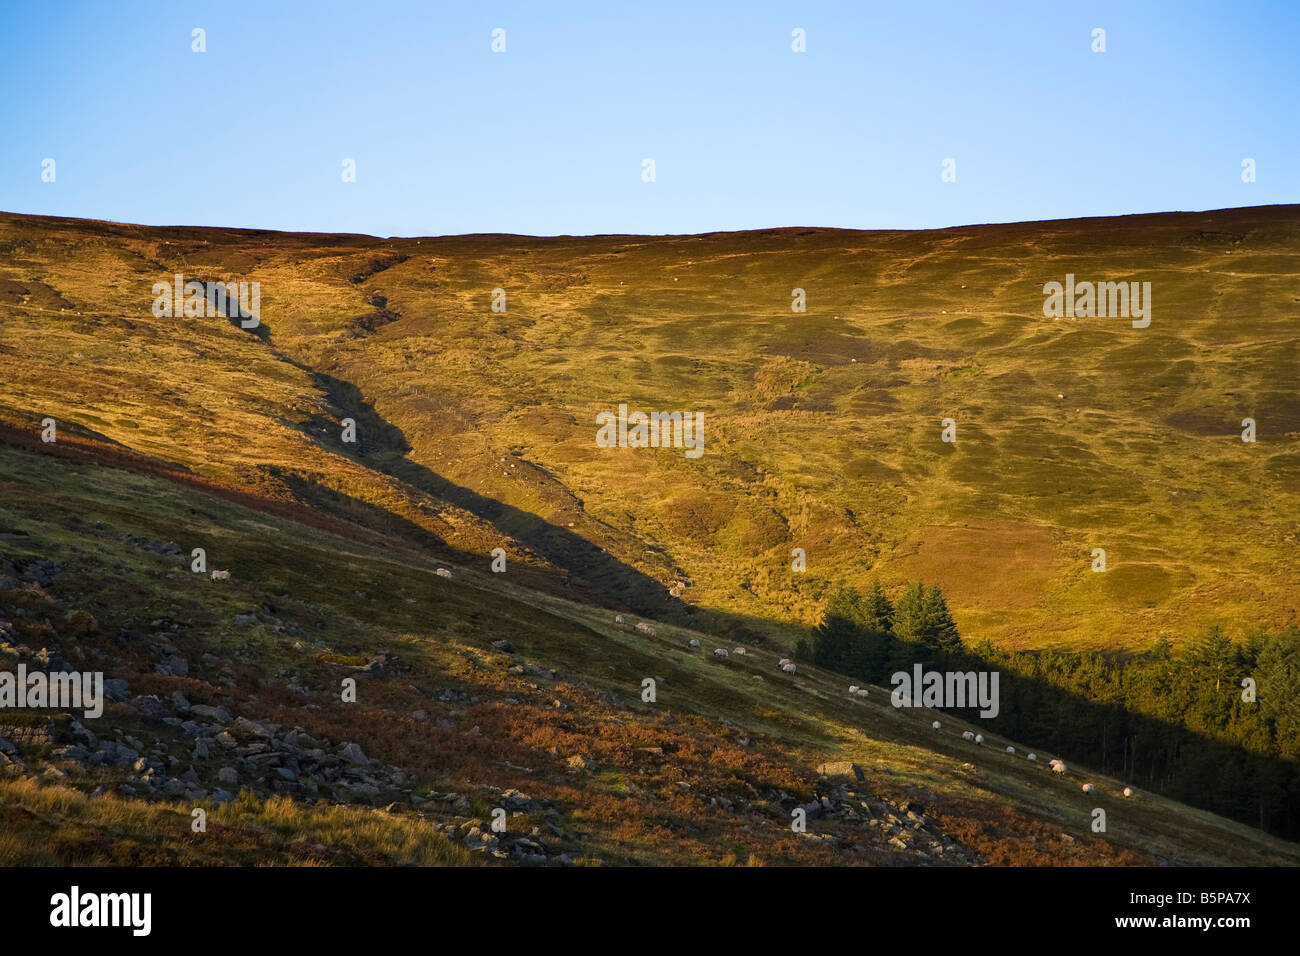 Valley and Moorland, Monavullagh Mountains, County Waterford, Ireland - Stock Image